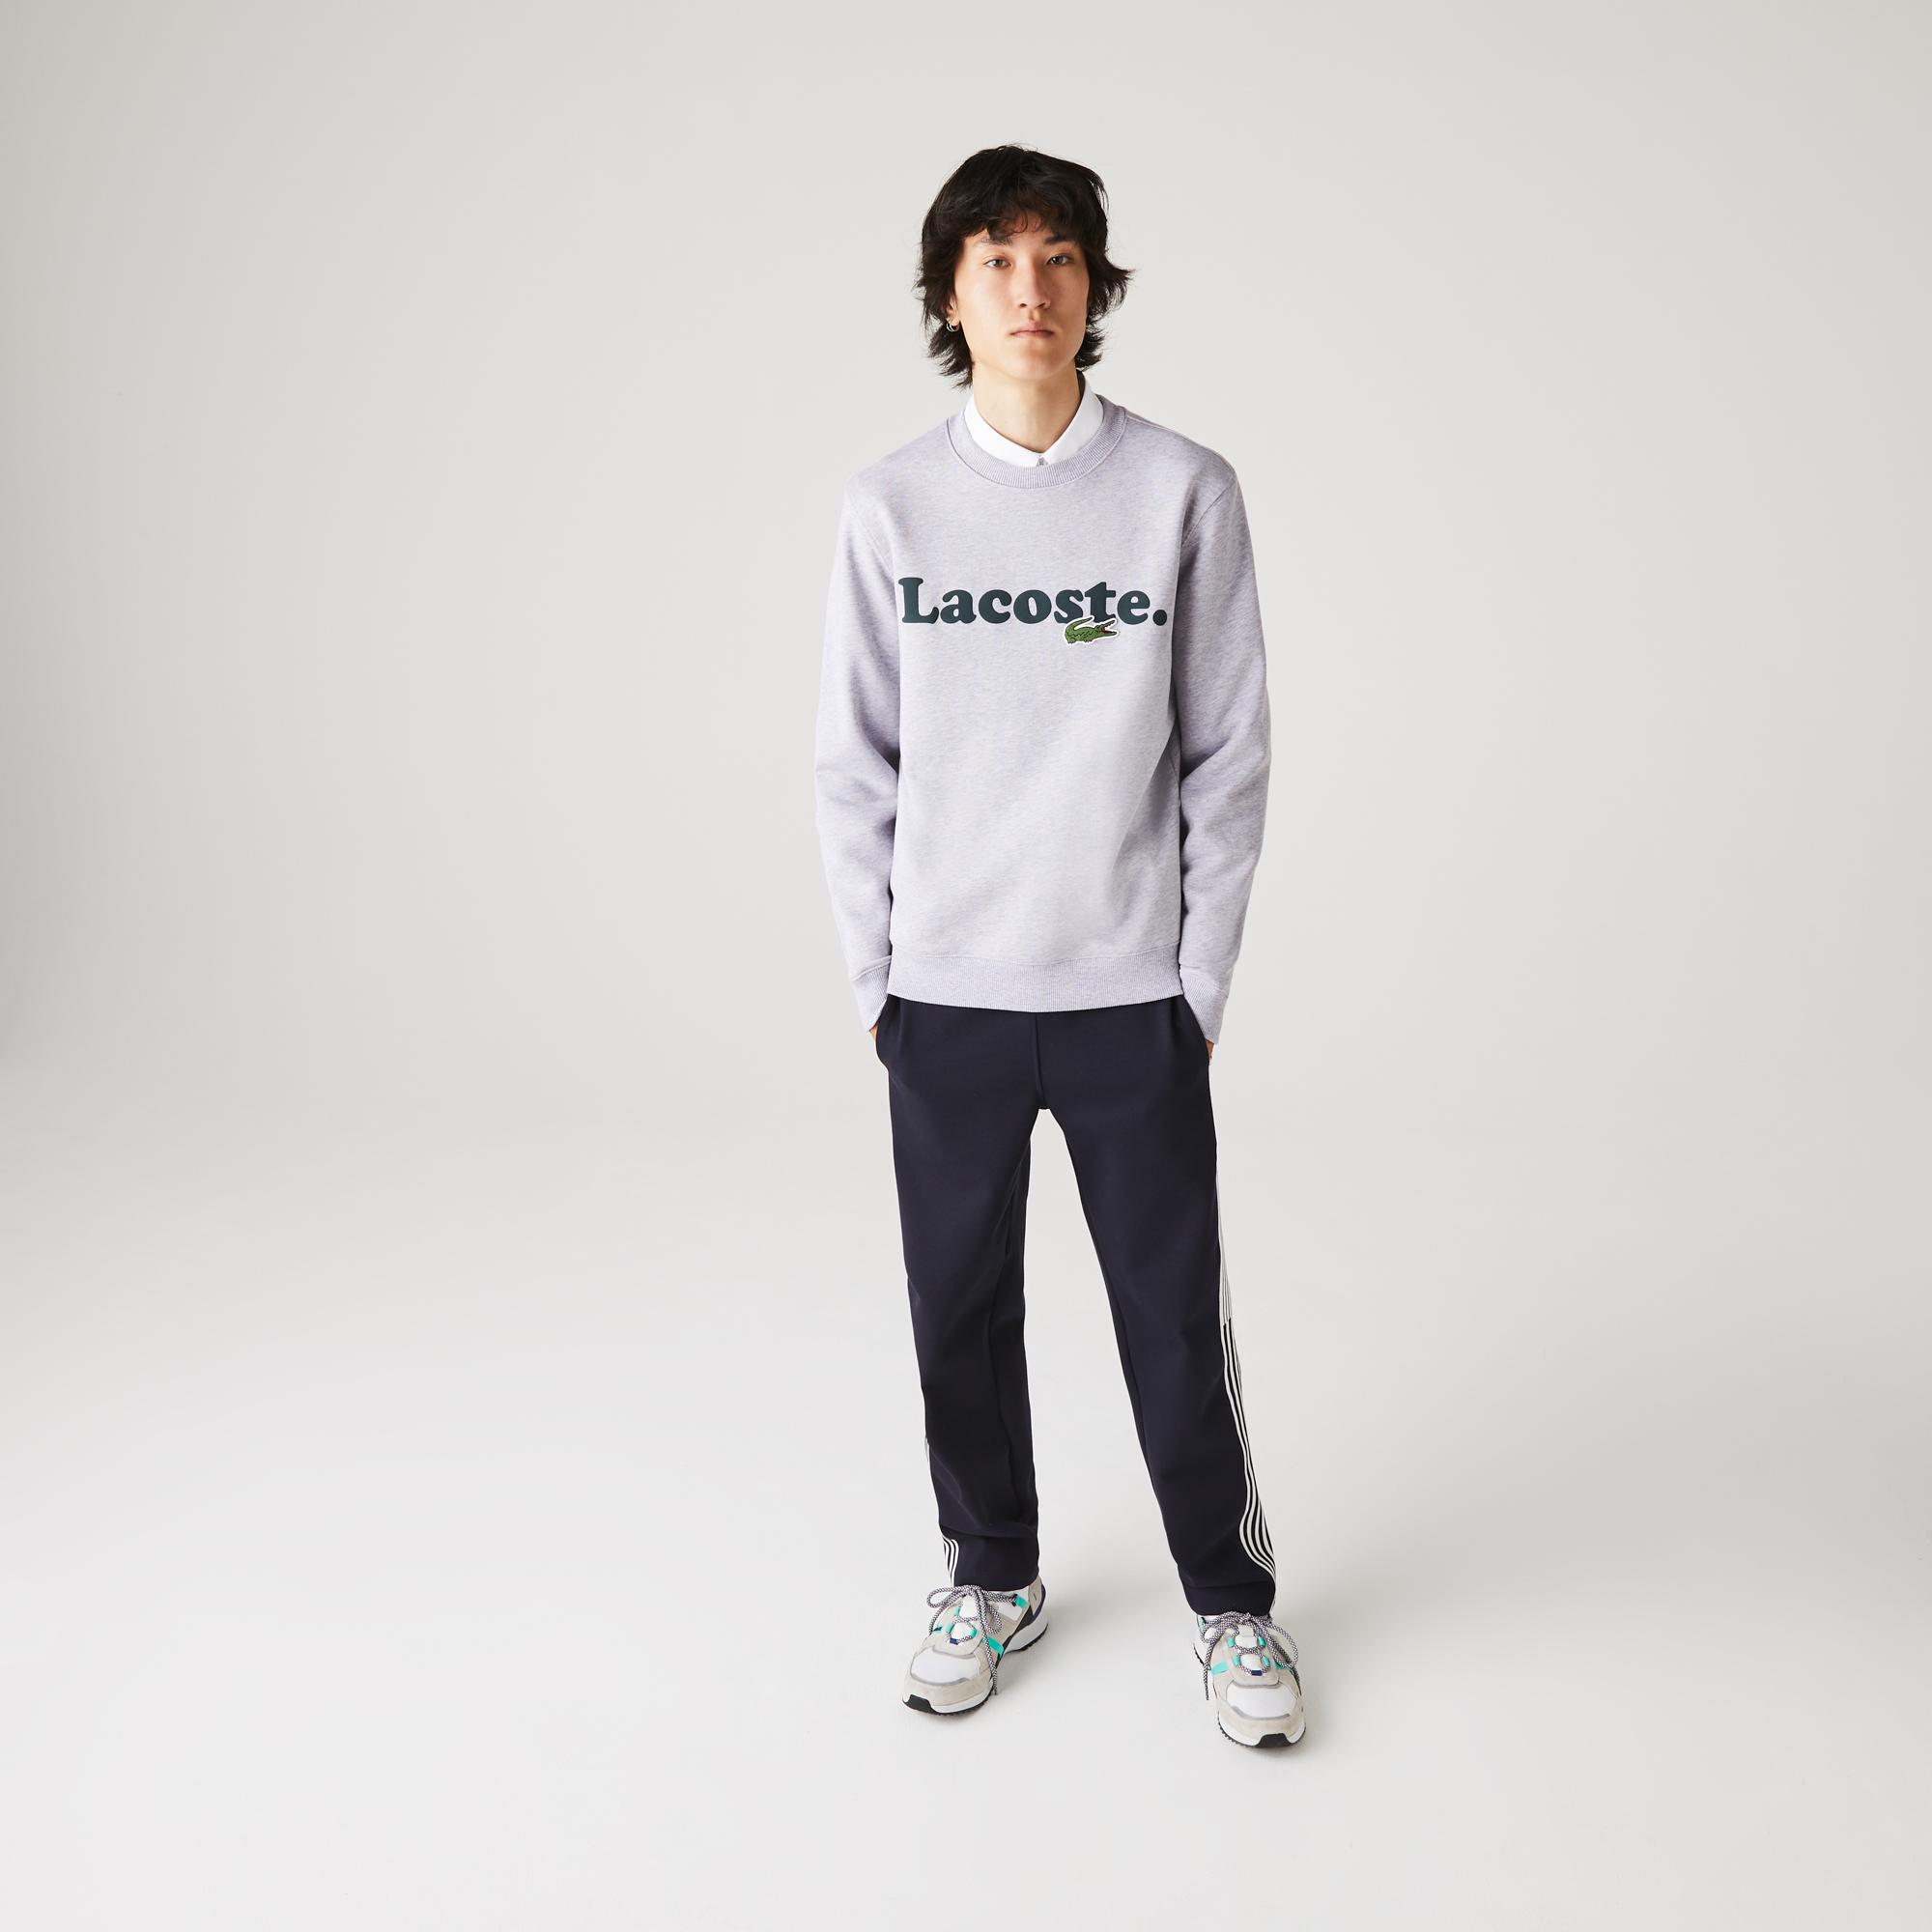 Lacoste Men's And Crocodile Branded Fleece Sweatshirt